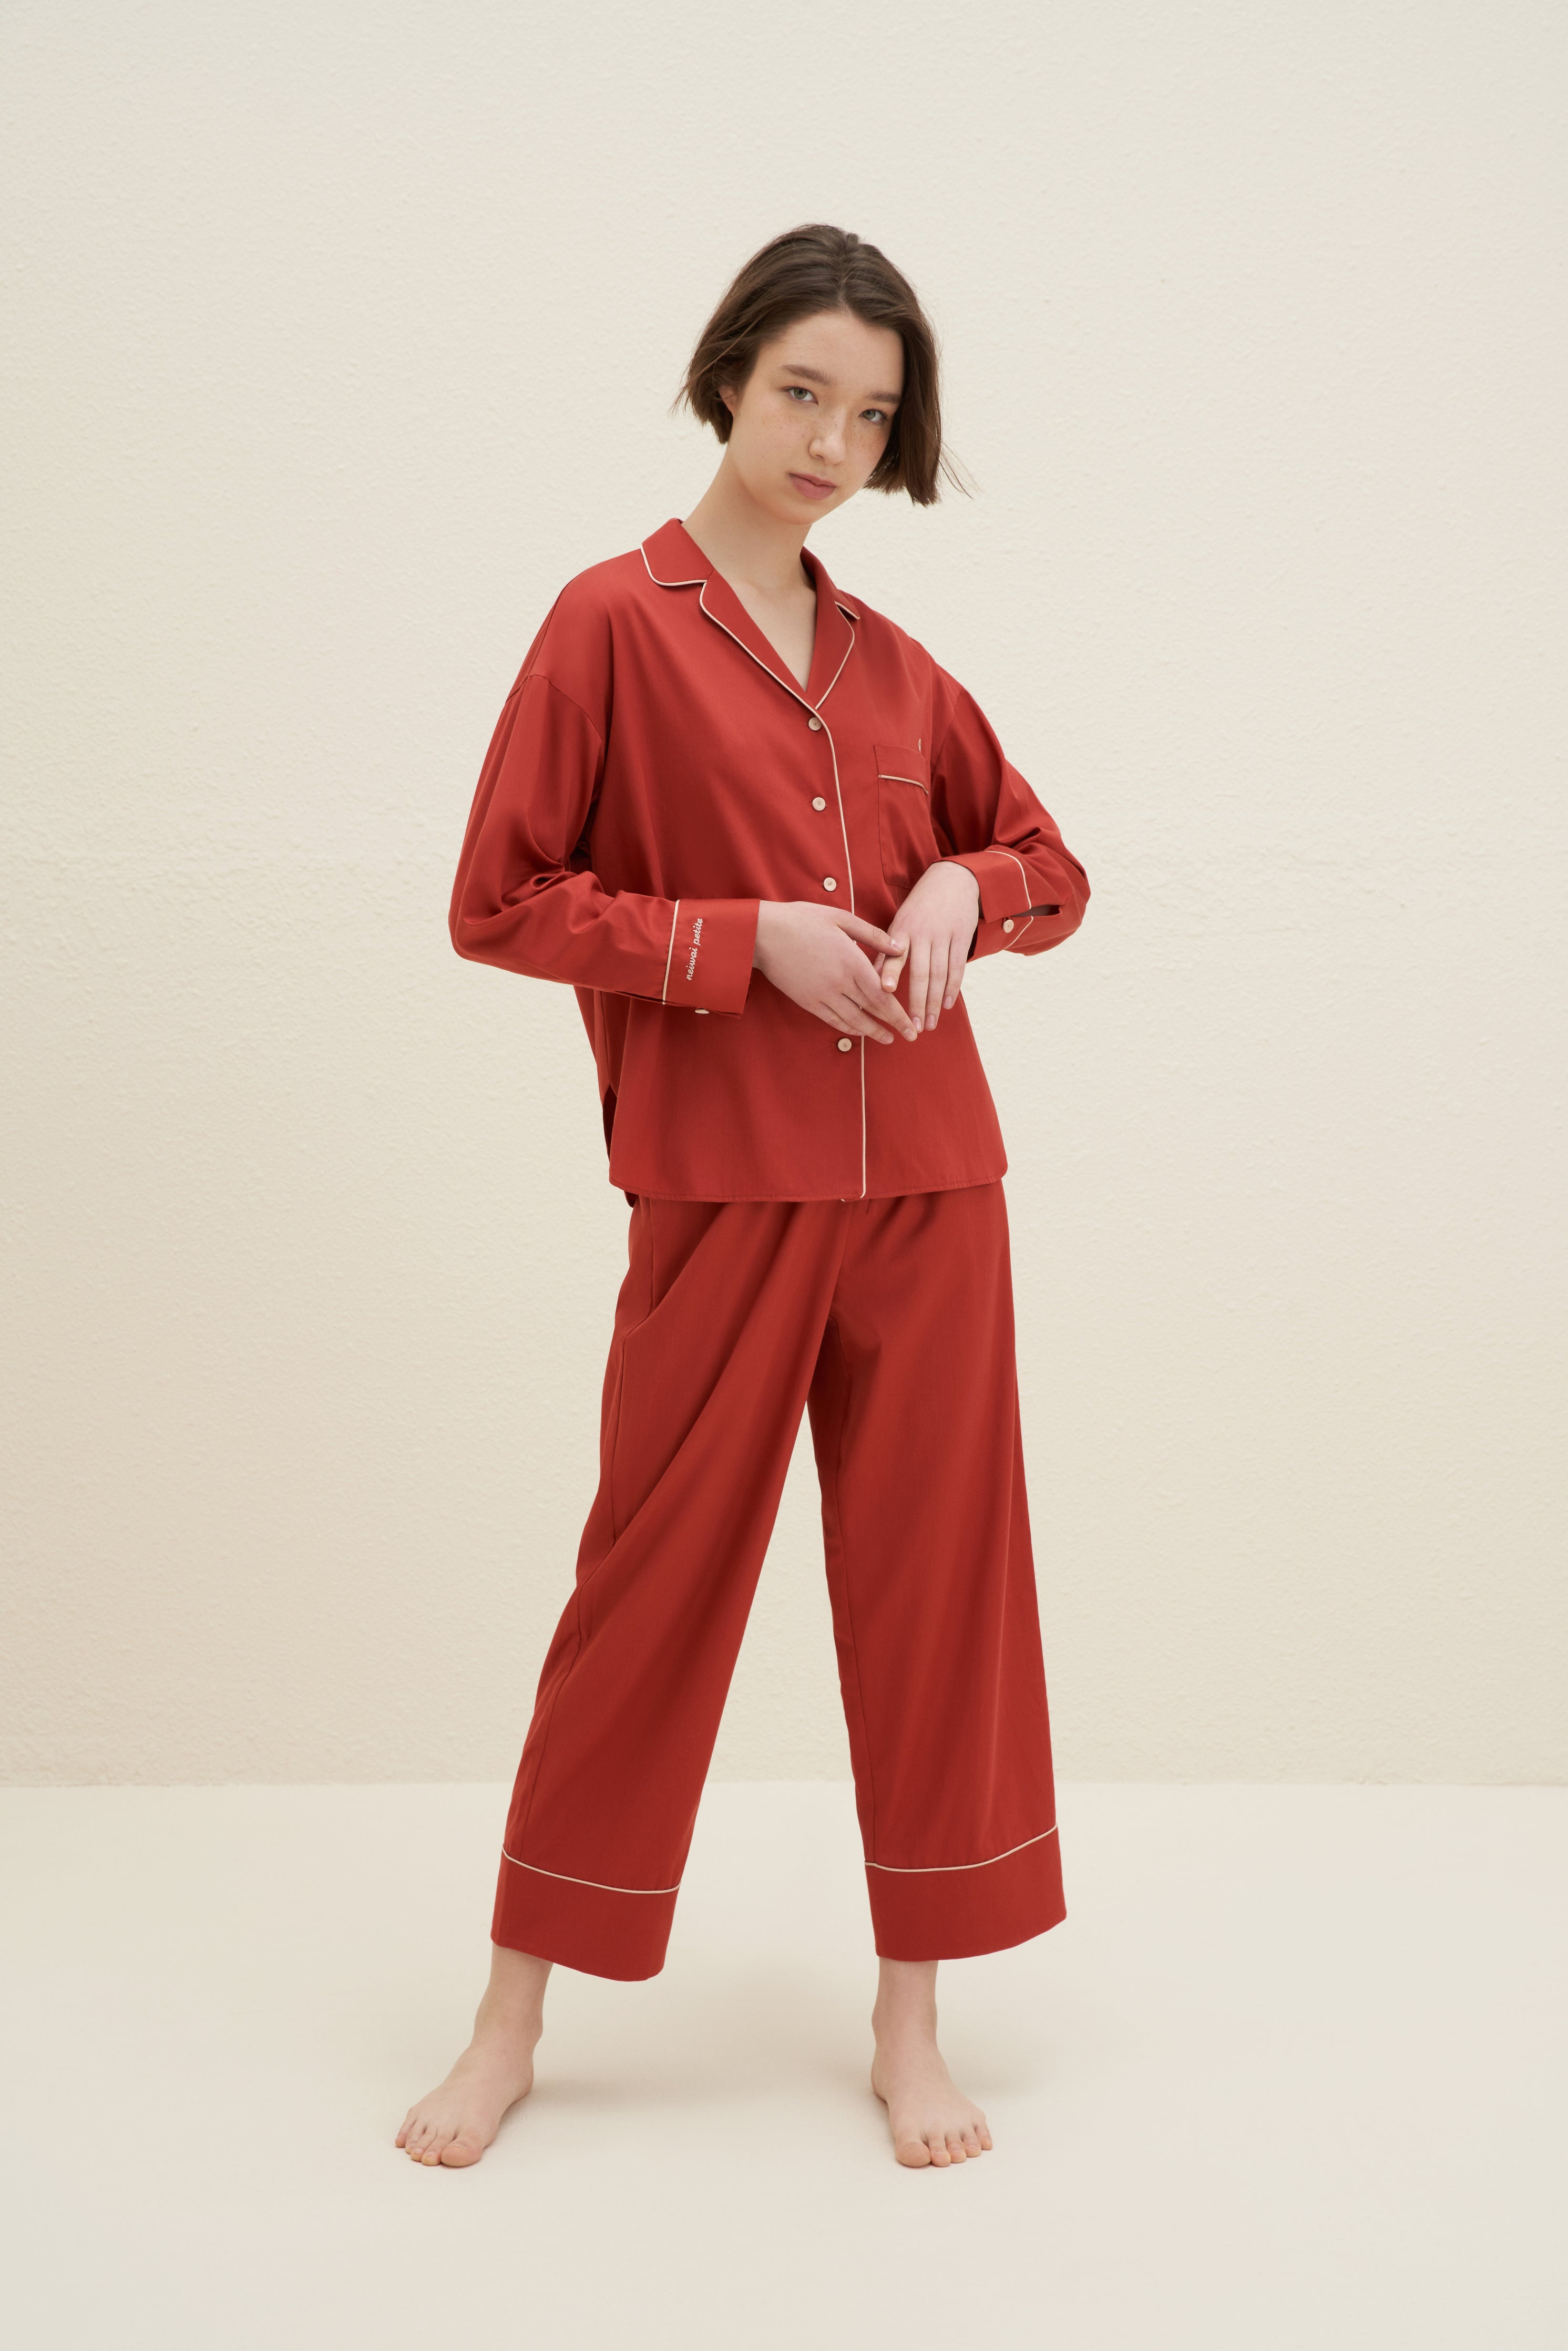 Model wearing NEIWAI's Classic Embroidered Pajama Shirt in Baked Clay.